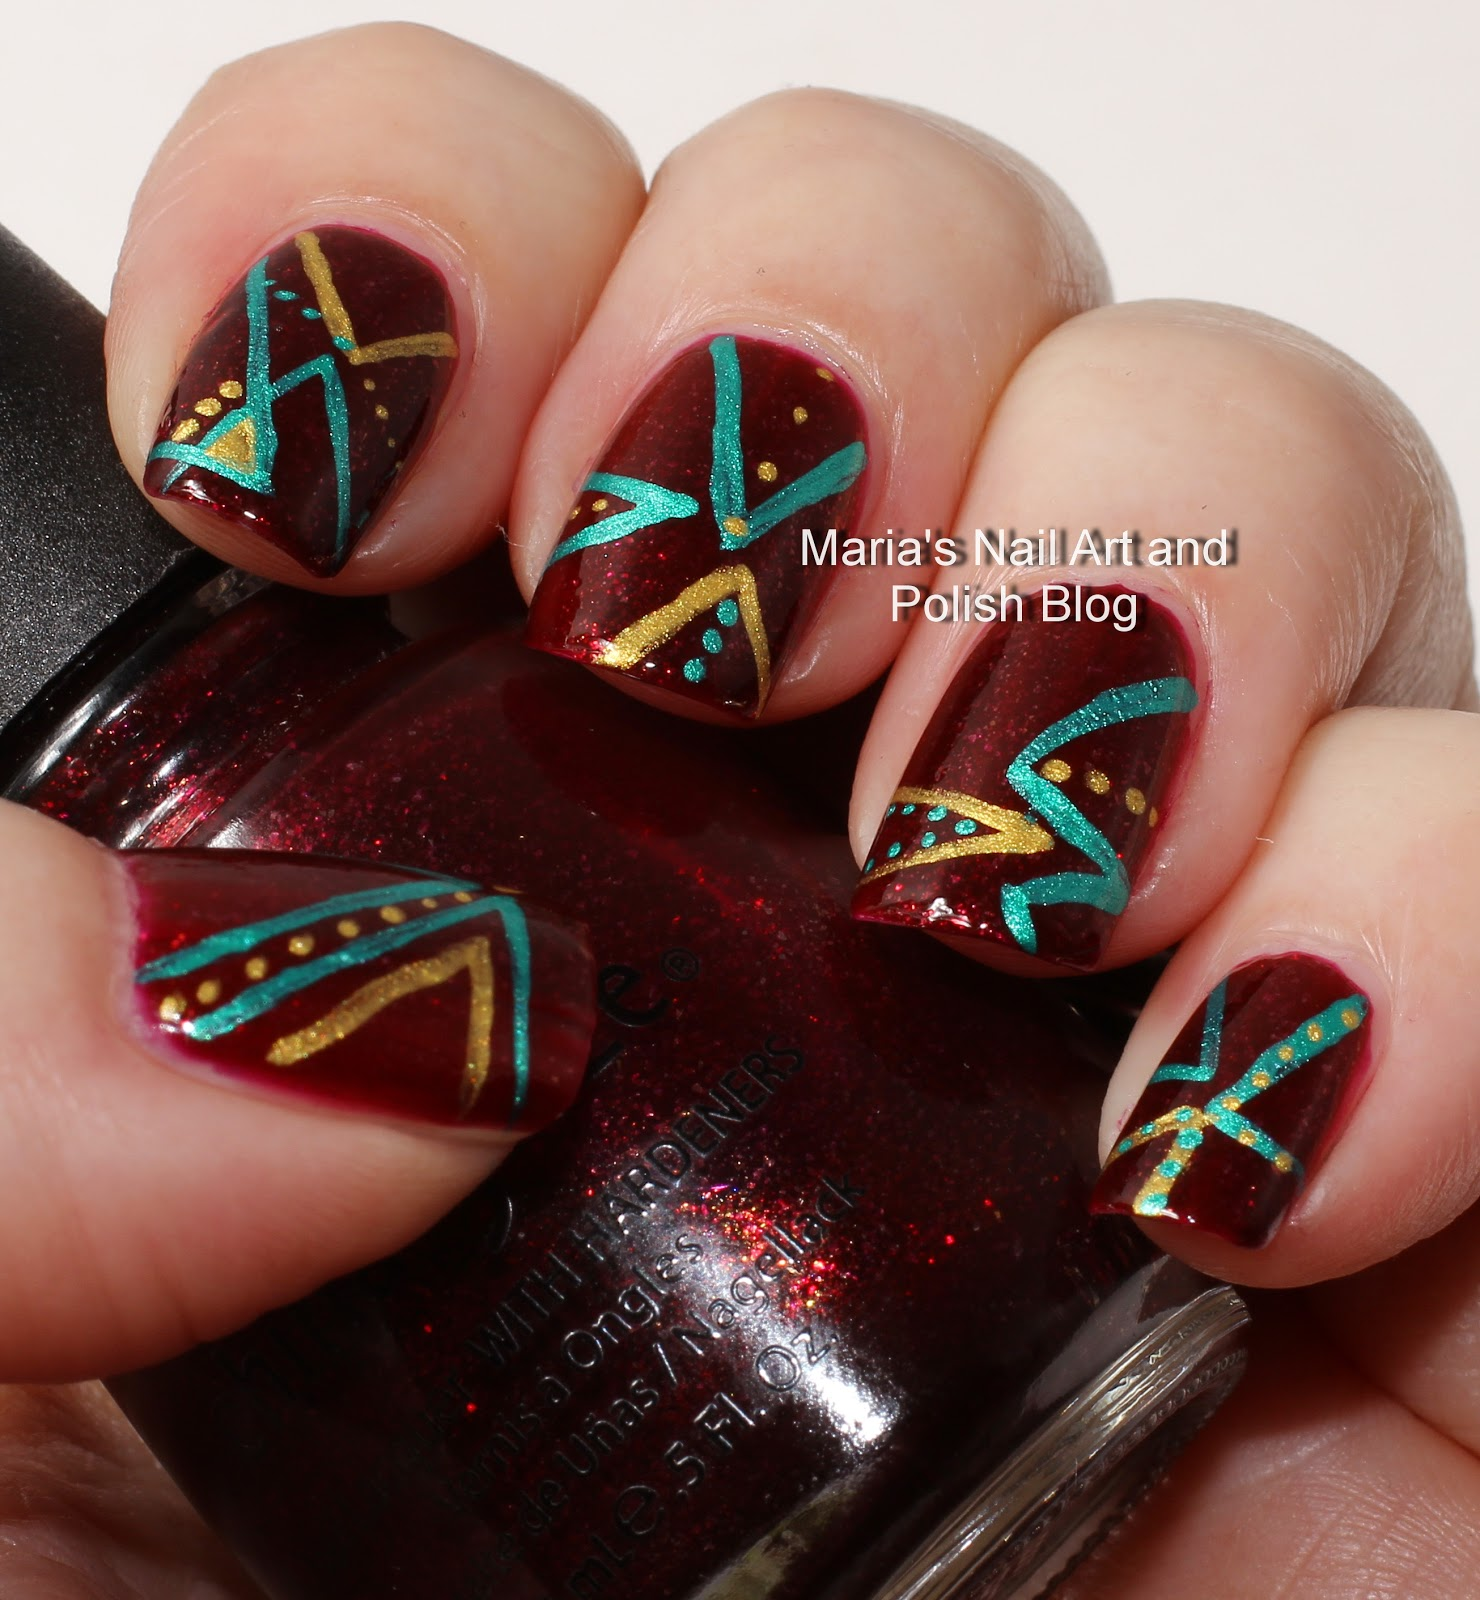 Marias Nail Art And Polish Blog Flushed With Stripes And: Marias Nail Art And Polish Blog: Abstract Chevron Nail Art